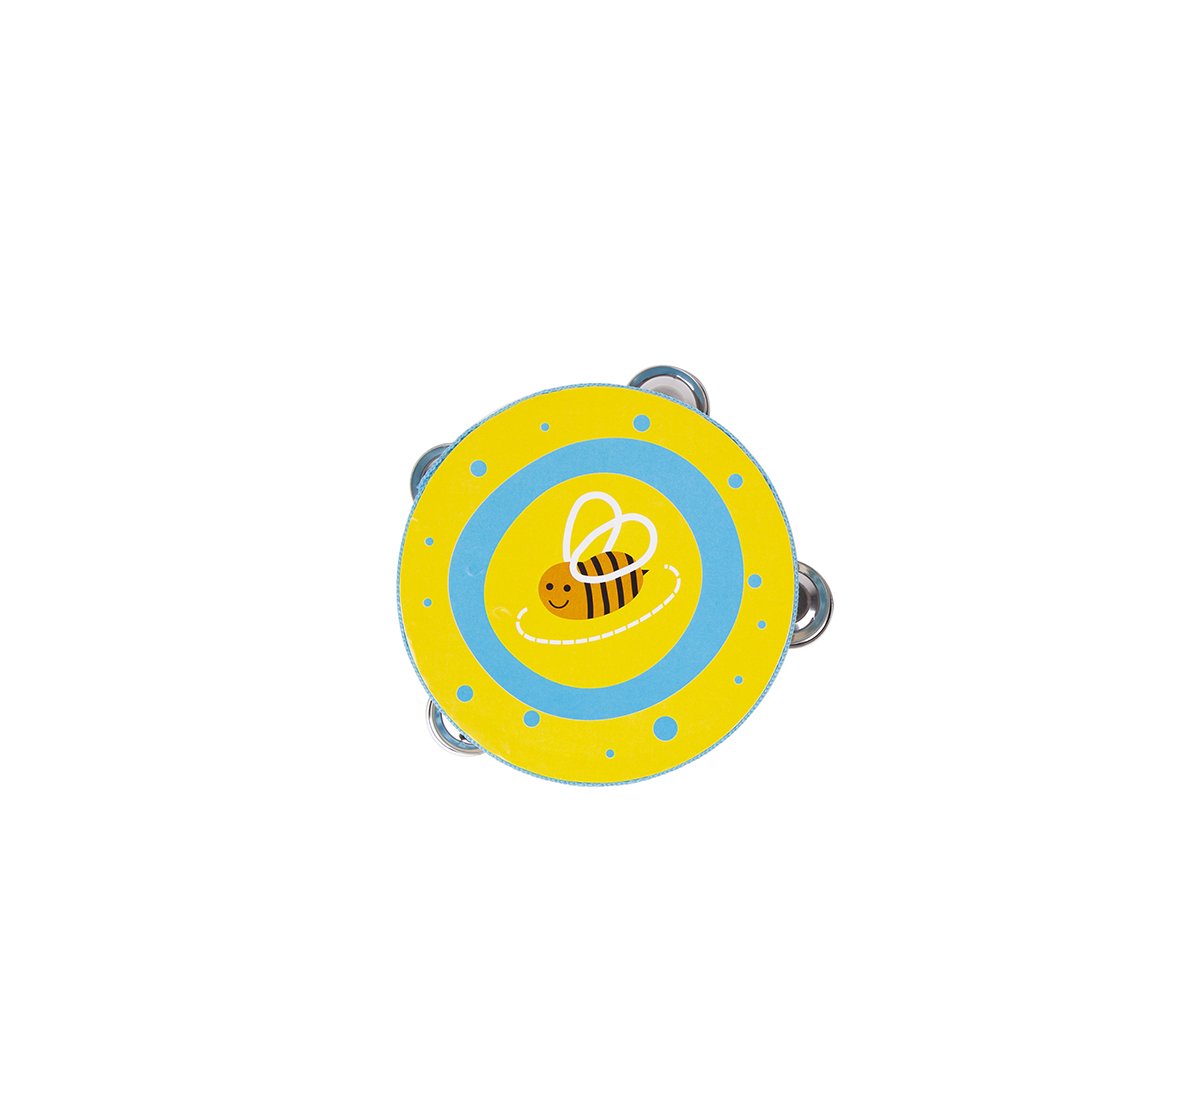 Shooting Star | Shooting Star Wooden Tambourine Drum for Kids age 18M +